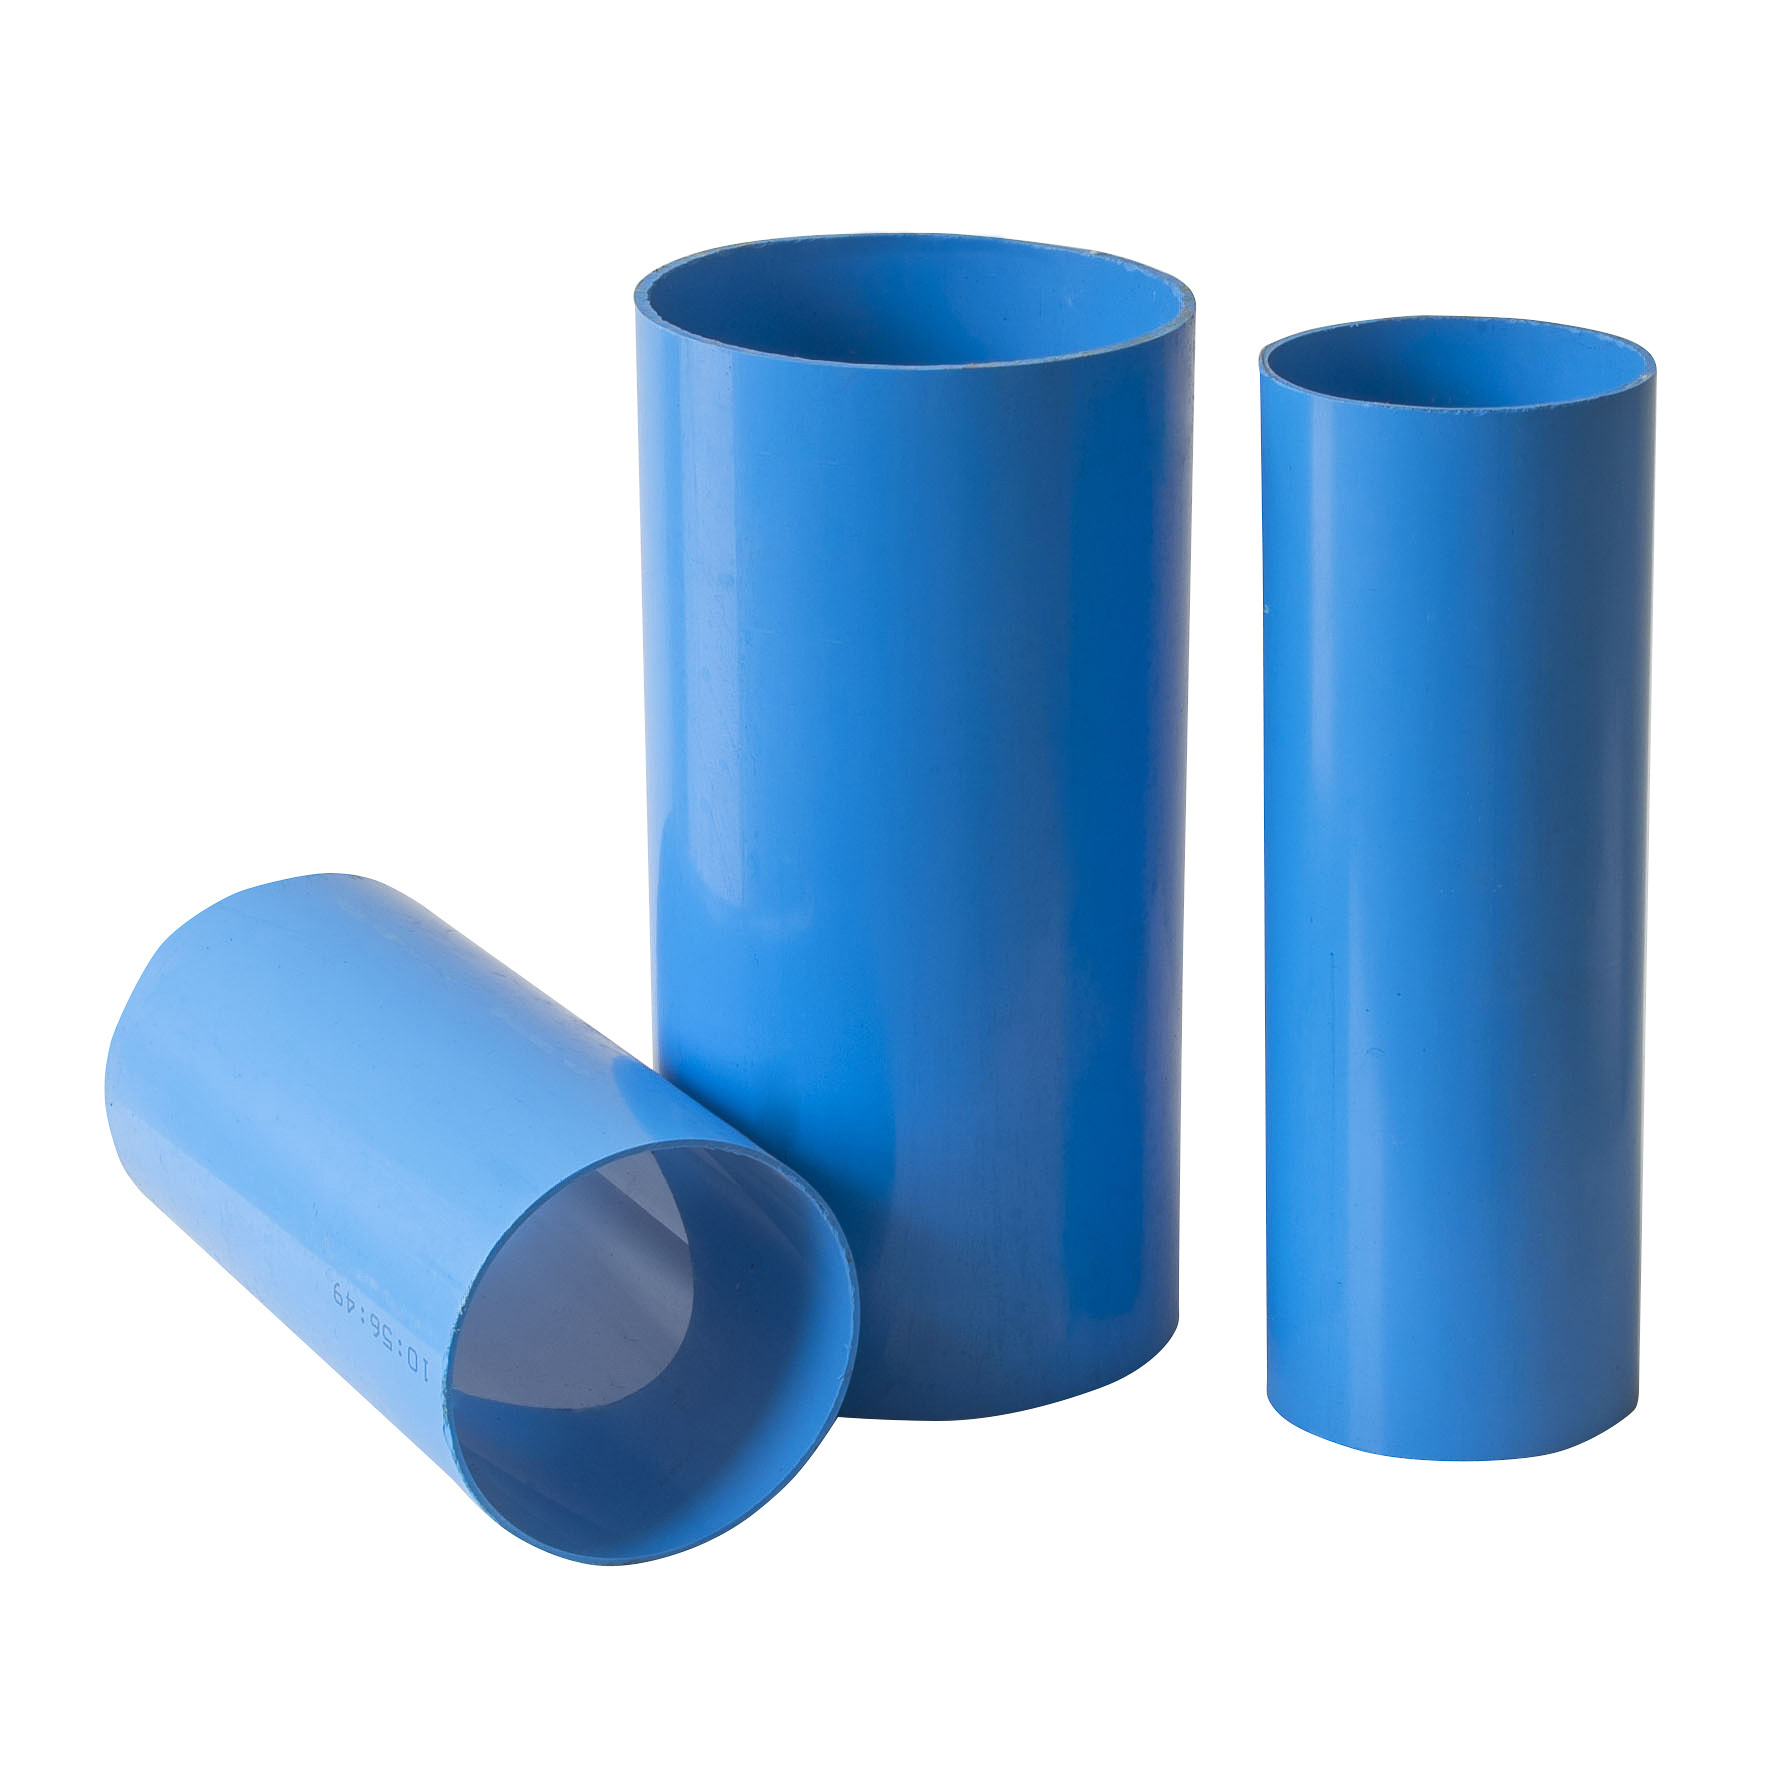 China Large Diameter Plastic Drain Pipe 200mm 300mm 400mm UPVC PVC Pipe Prices List - China UPVC Pipes and UPVC Water Supply Pipes price